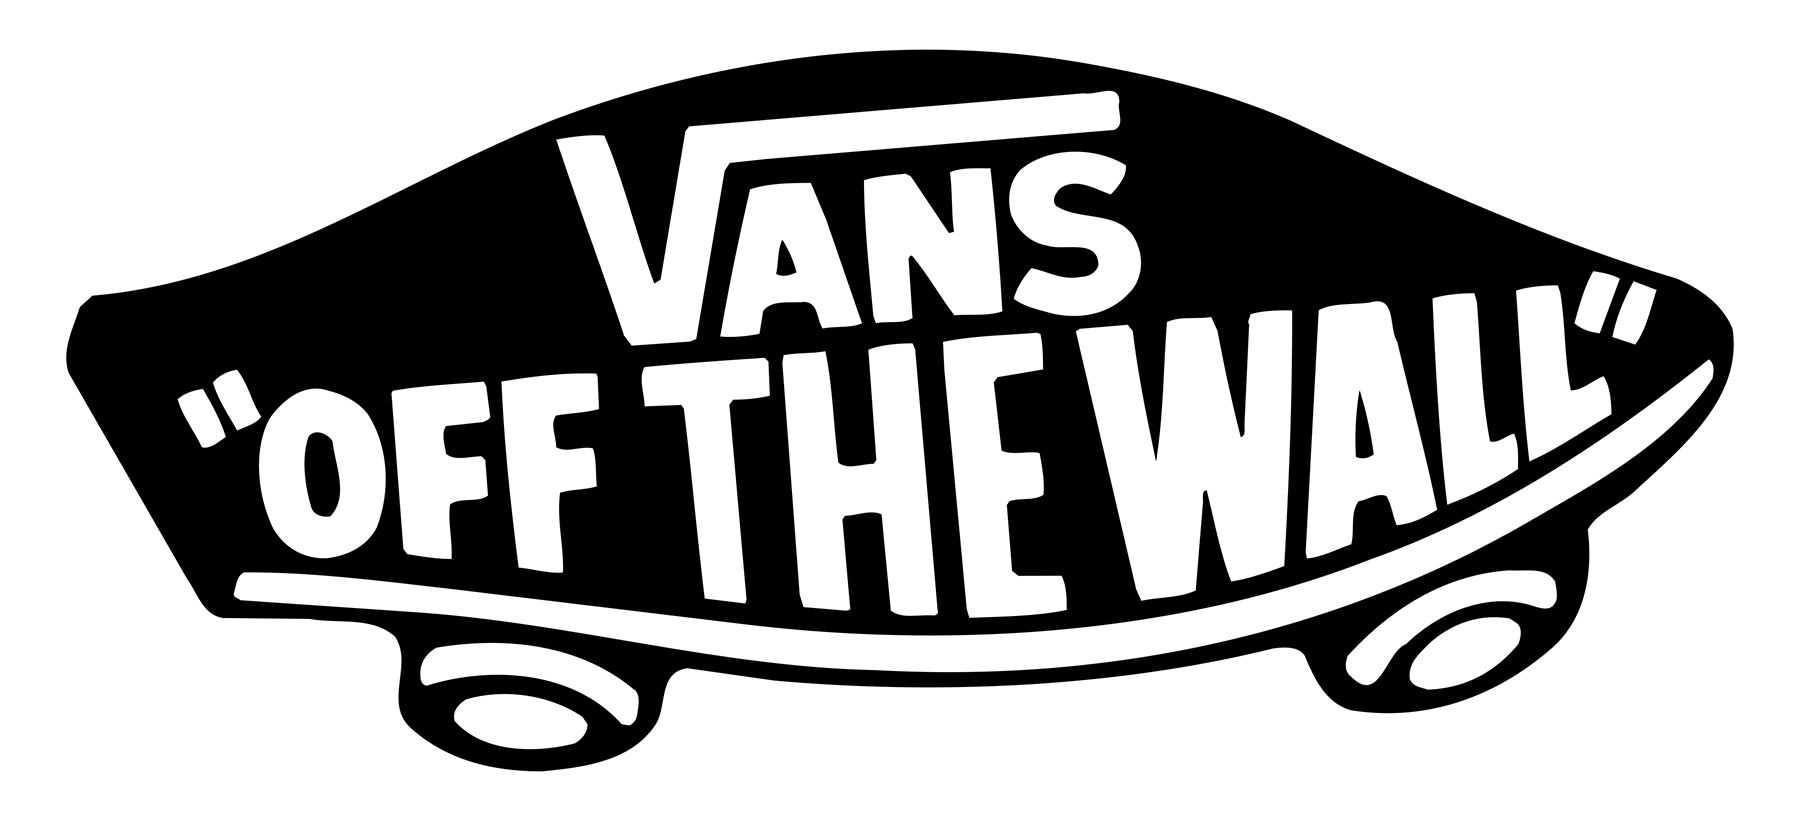 Vans Logo - Vans Logo, Vans Symbol, Meaning, History and Evolution